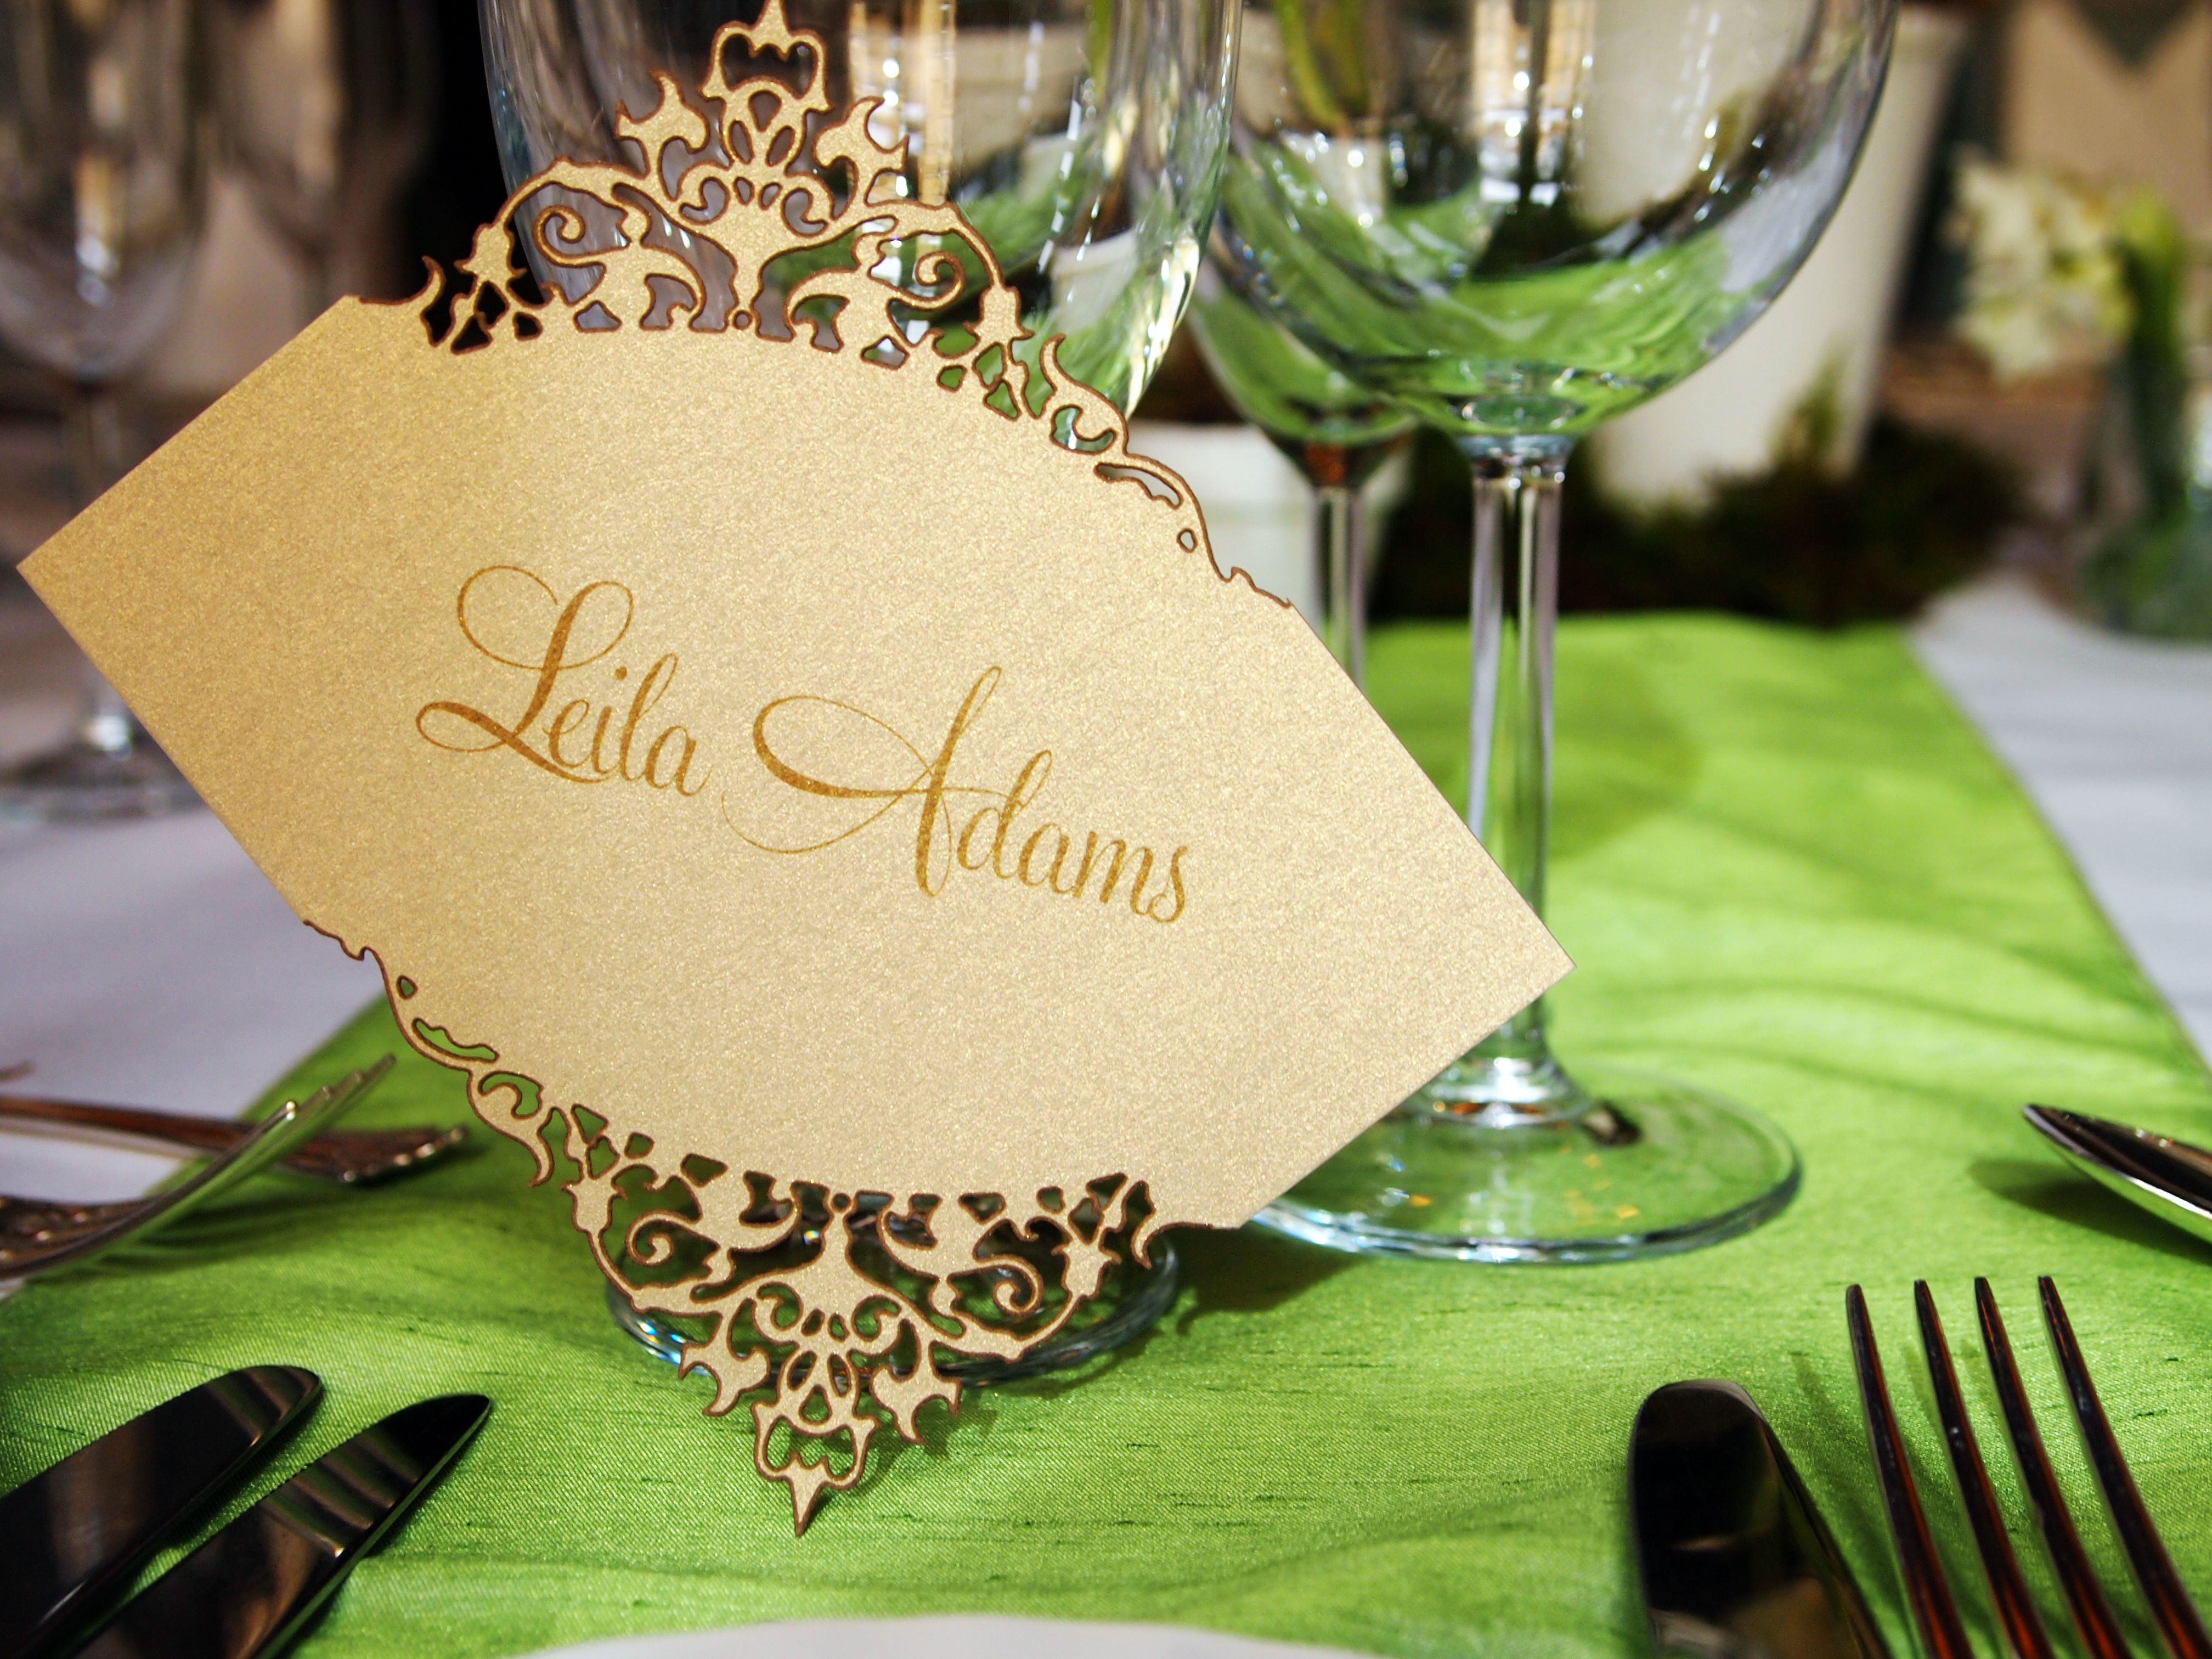 Laser-Cut Place Name Setting